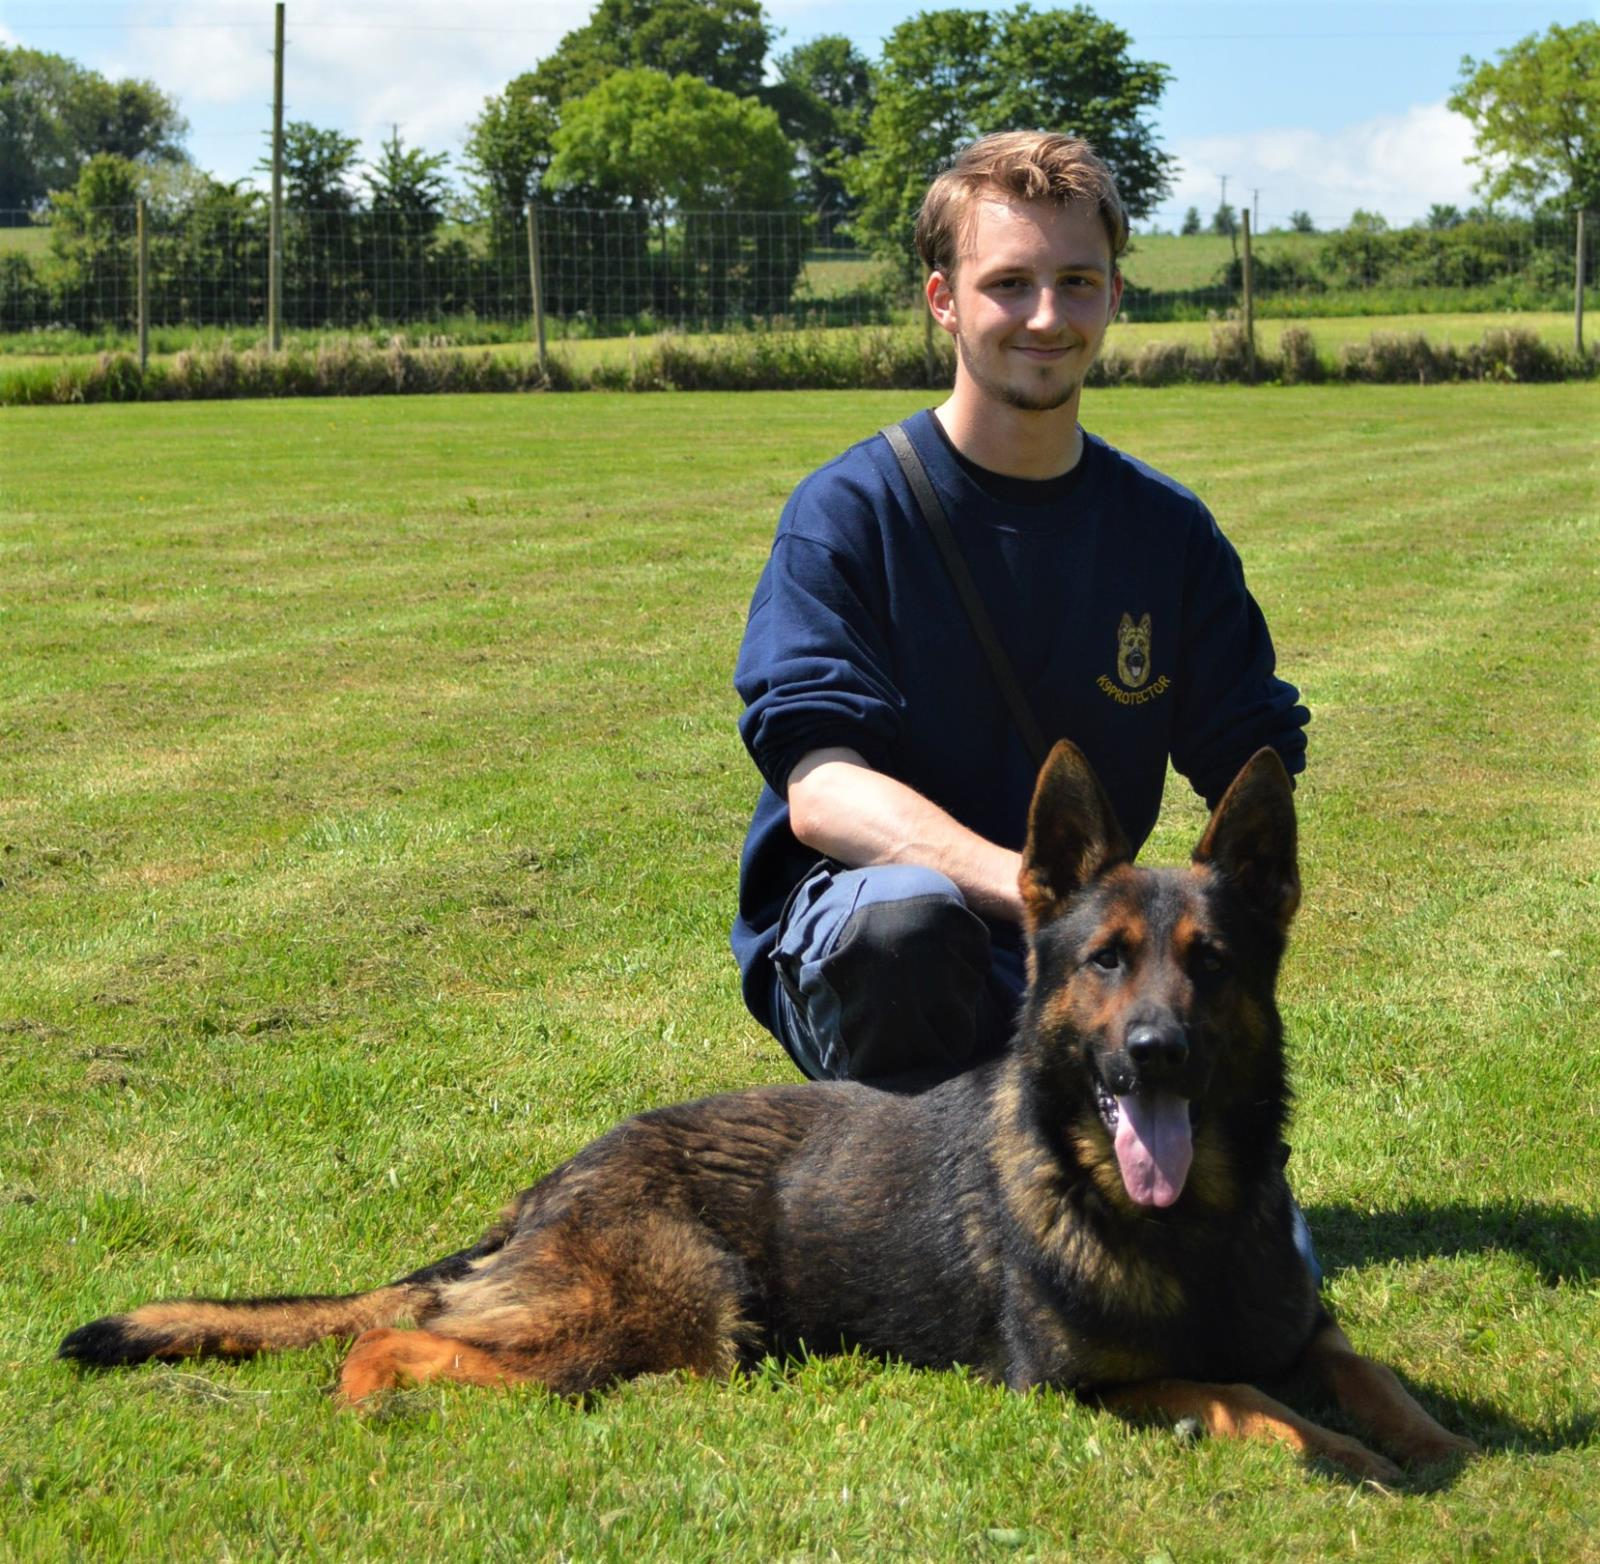 Protection dog trainer Kieran French